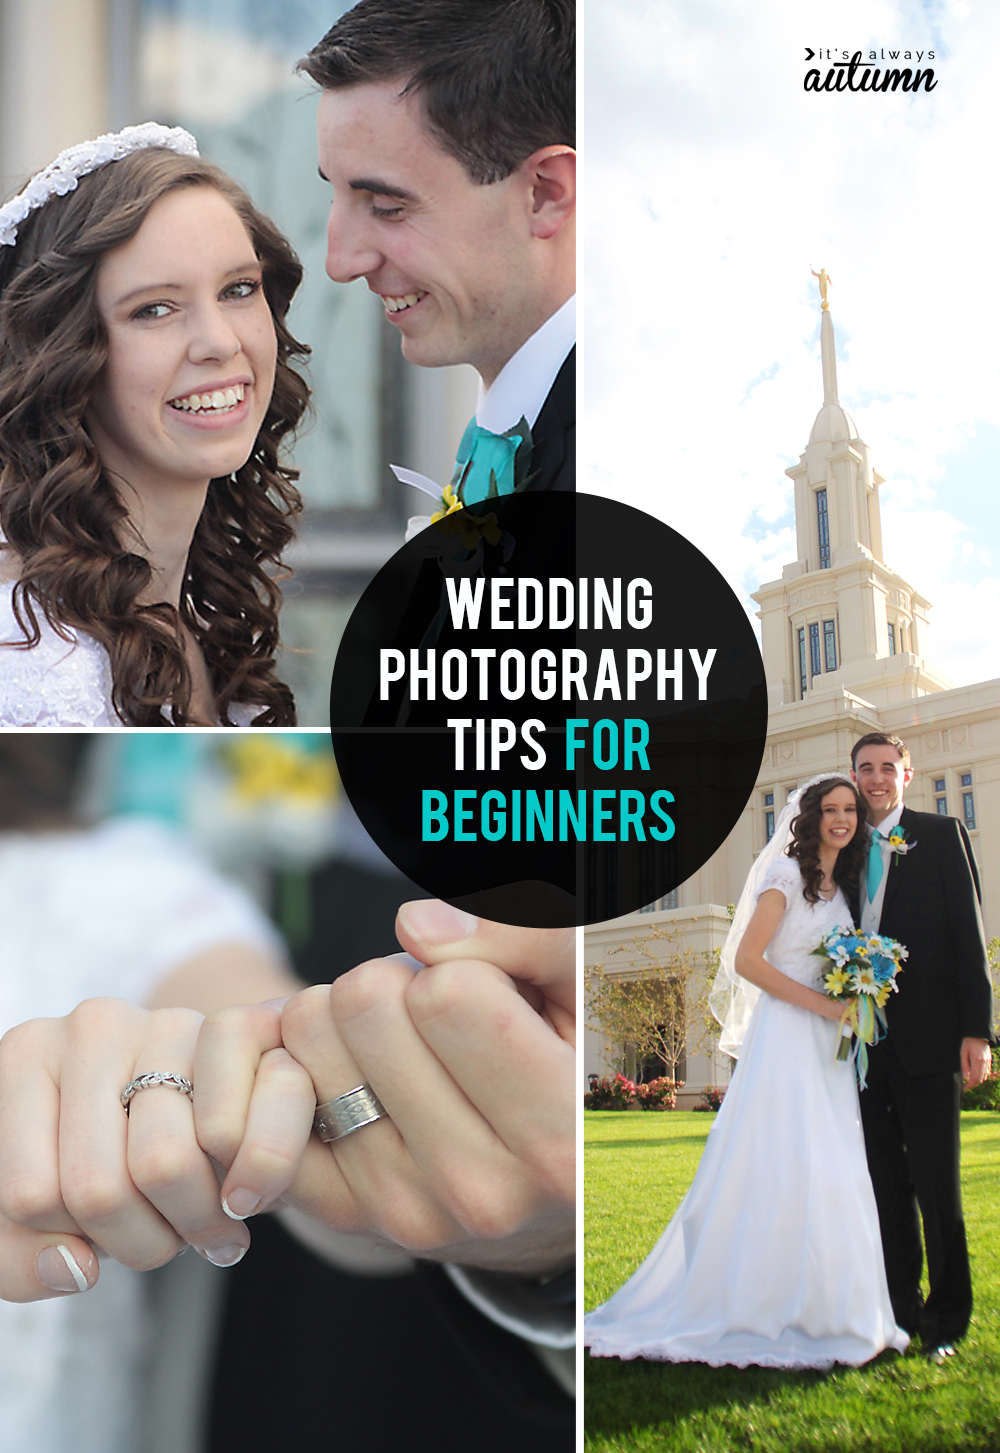 9 wedding photography tips so you can take great wedding photos even if you're not a pro!